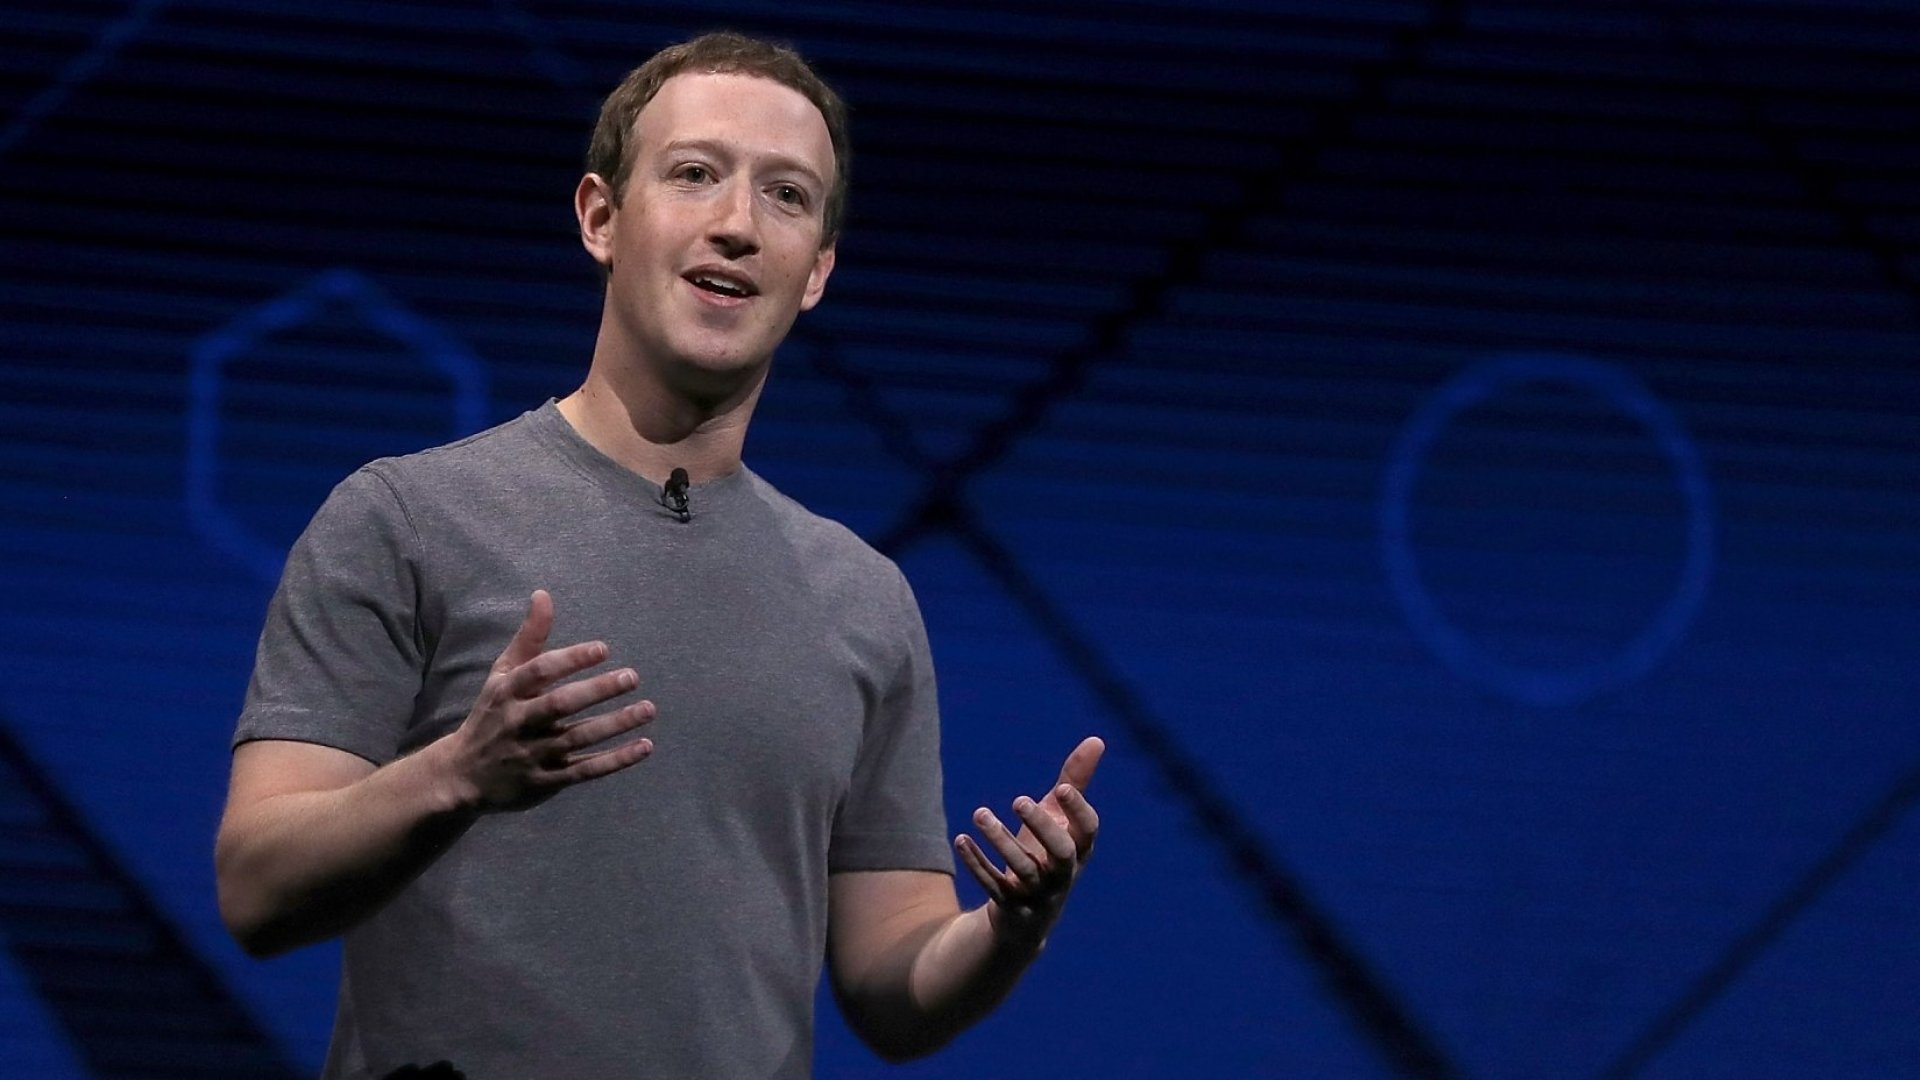 Facebook's New Mission Is a Step in the Right Direction. But It's Not Enough